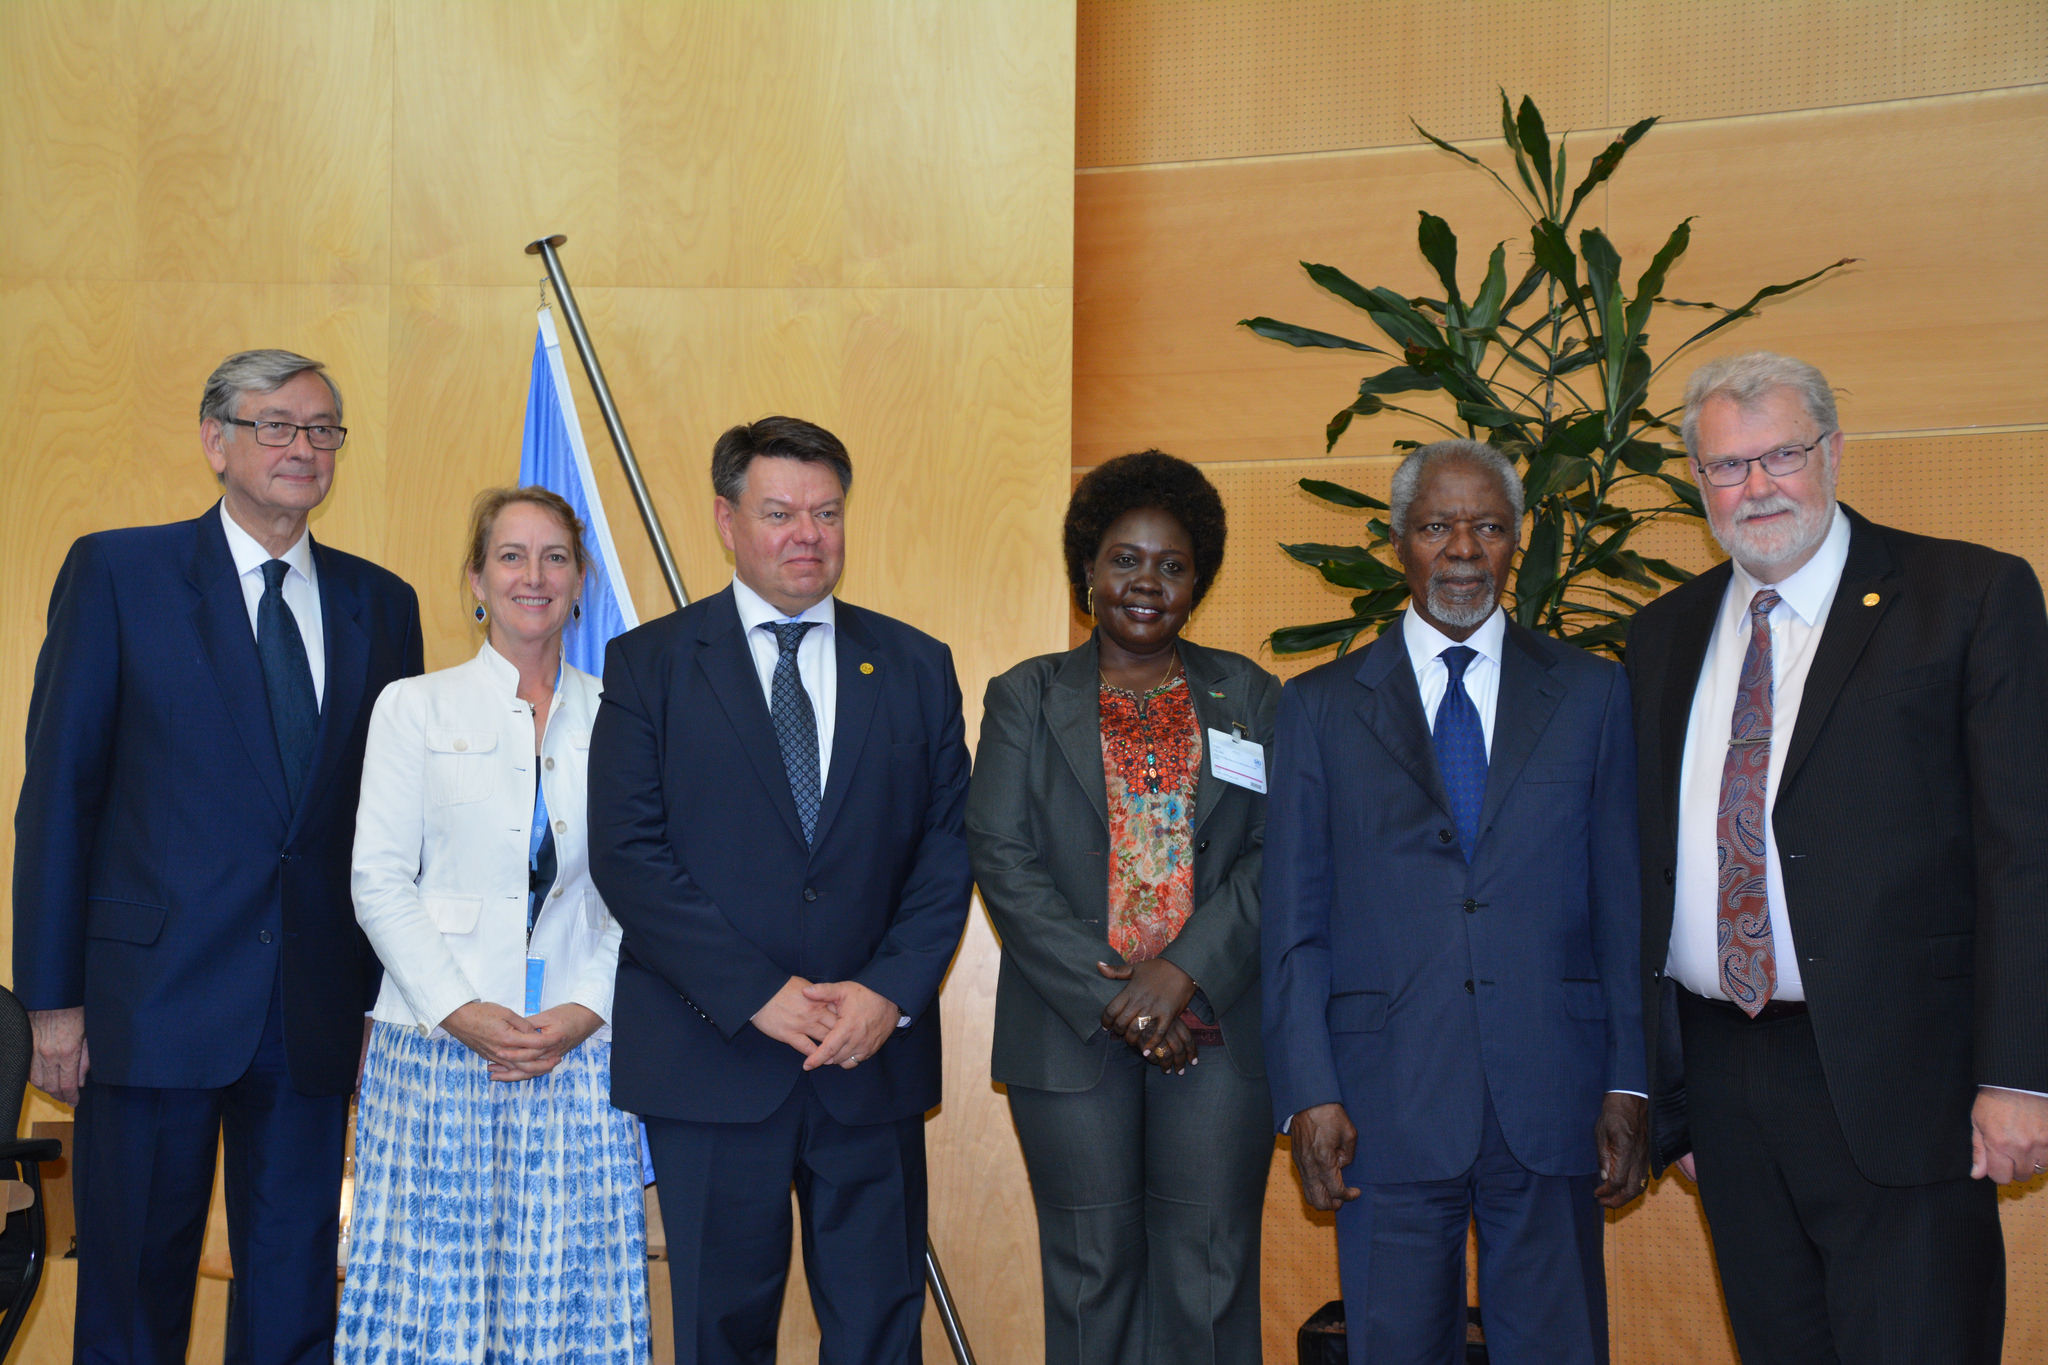 WMO Exec Council special session on water 25.6.2018